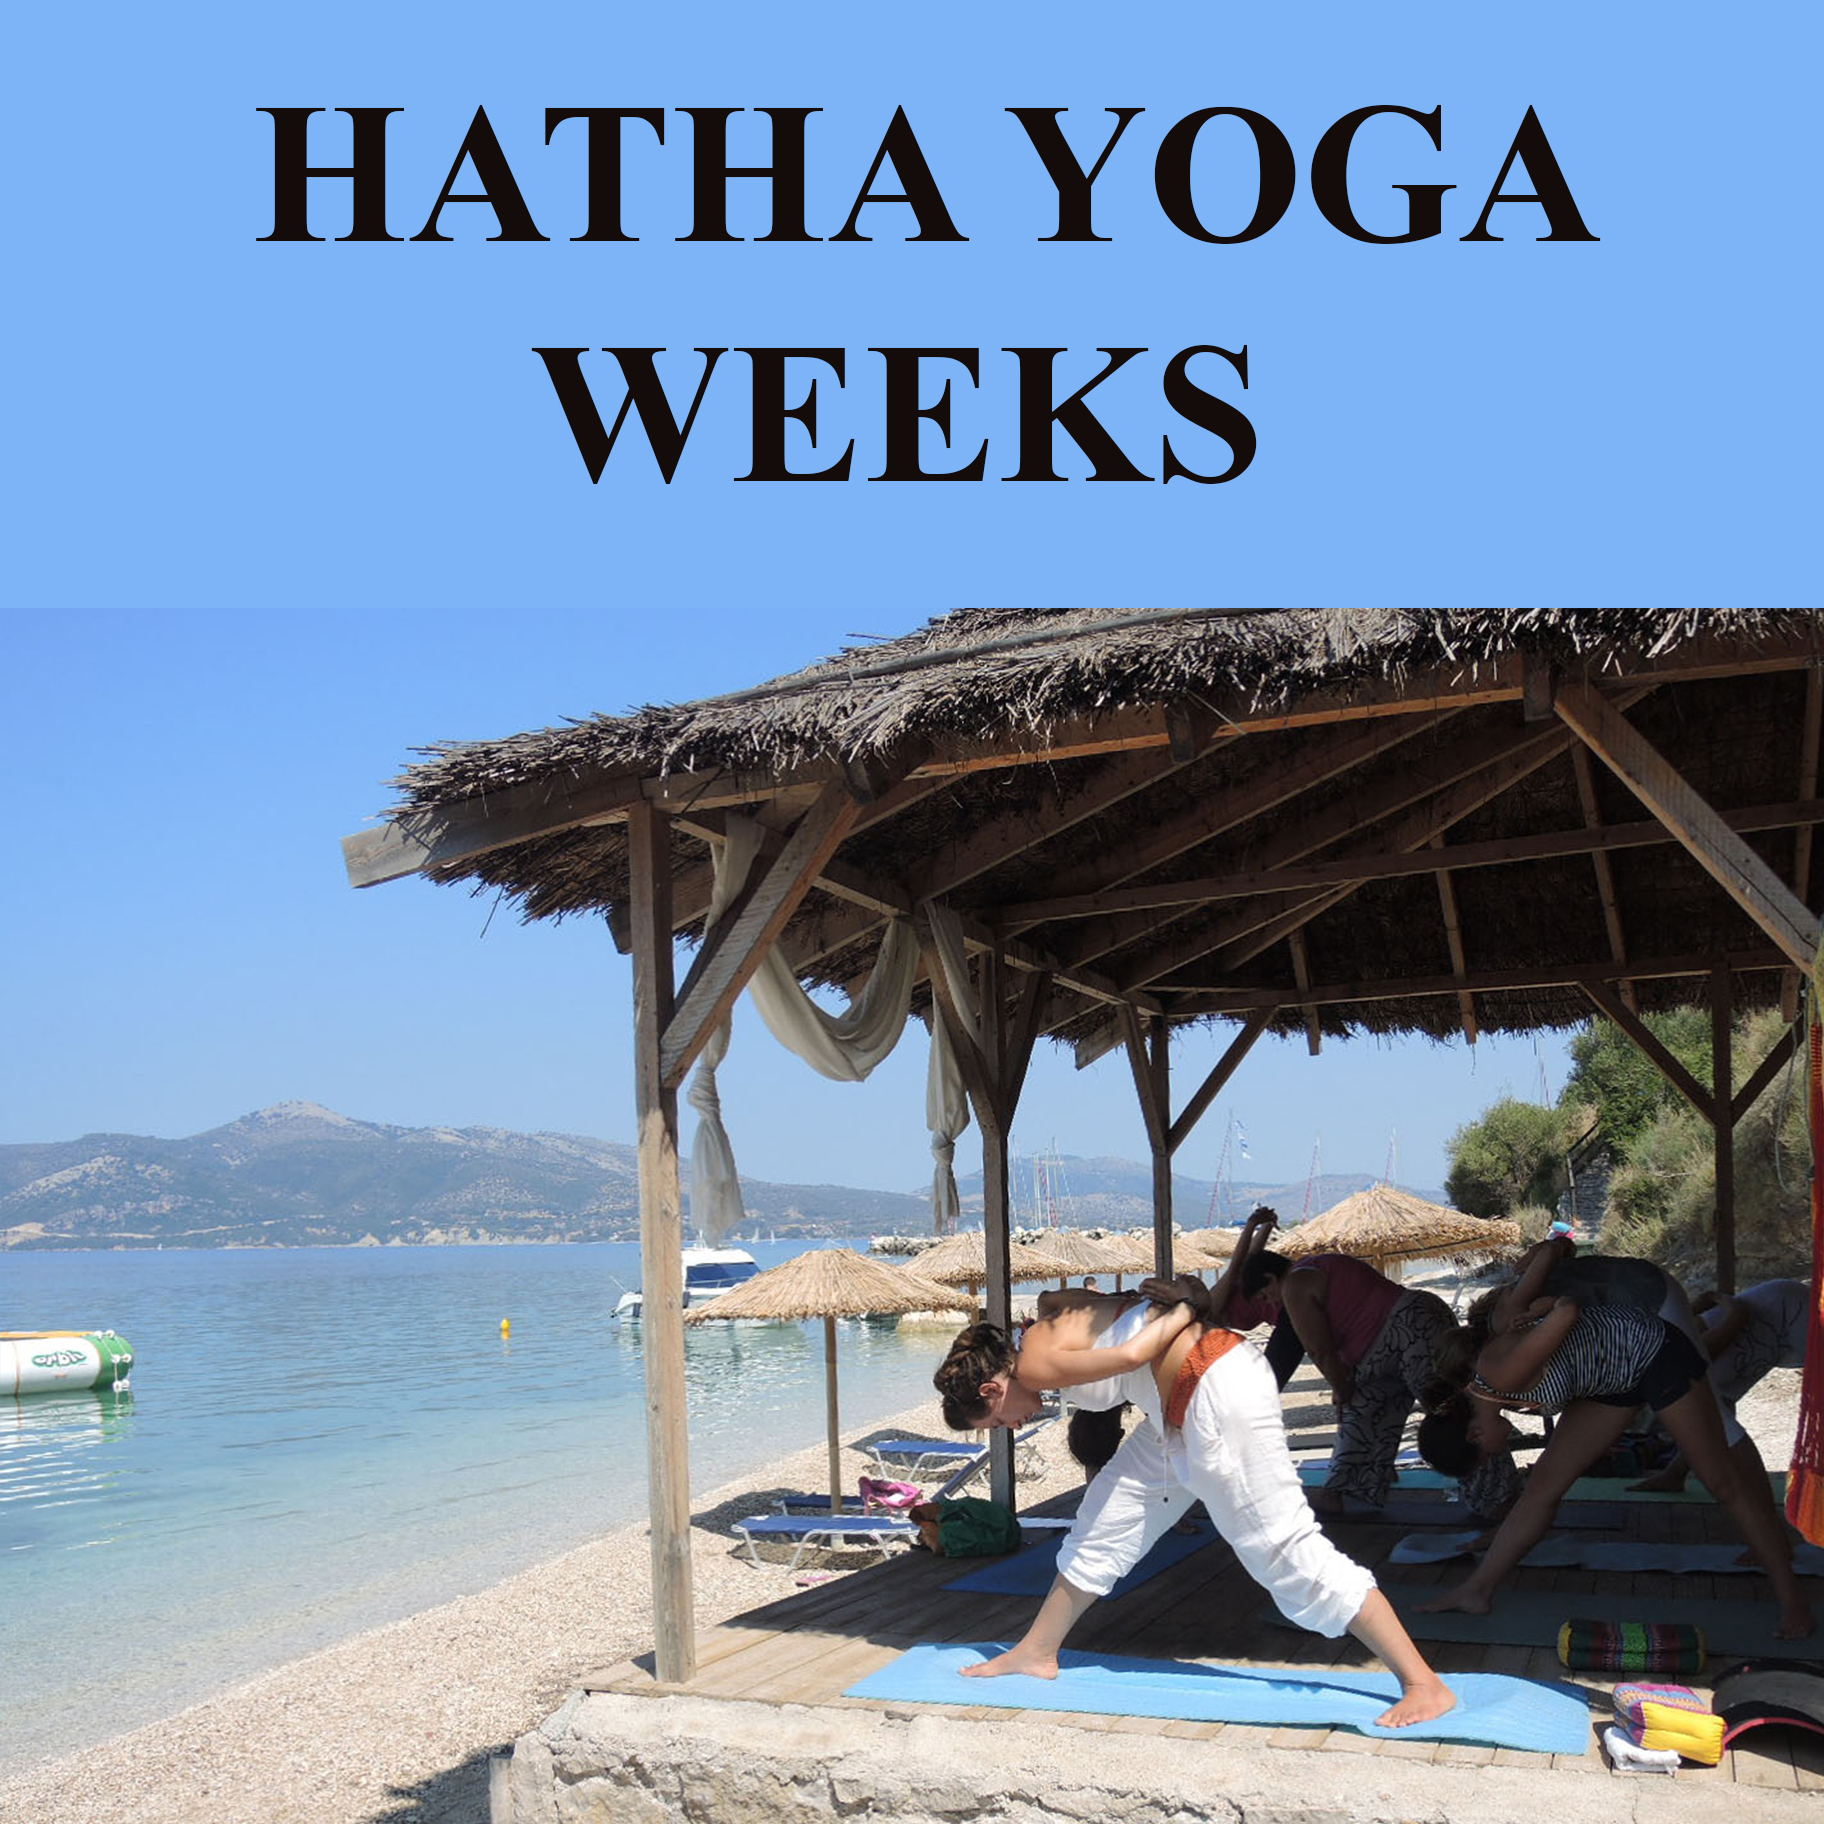 Hatha yoga and stay